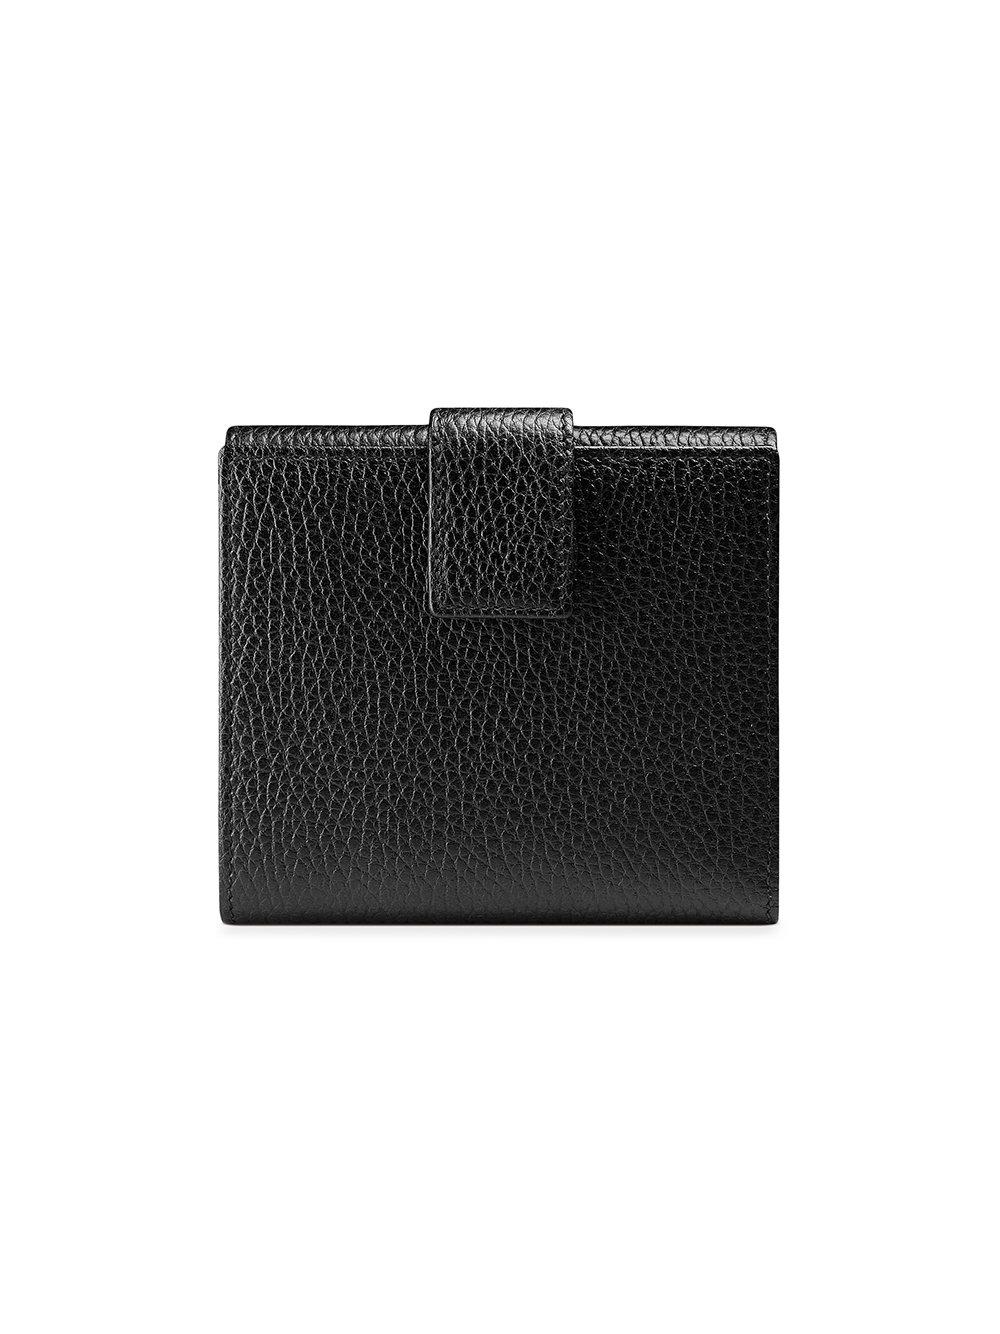 dbe7c35185e Lyst - Gucci Leather French Flap Wallet in Black - Save 19%